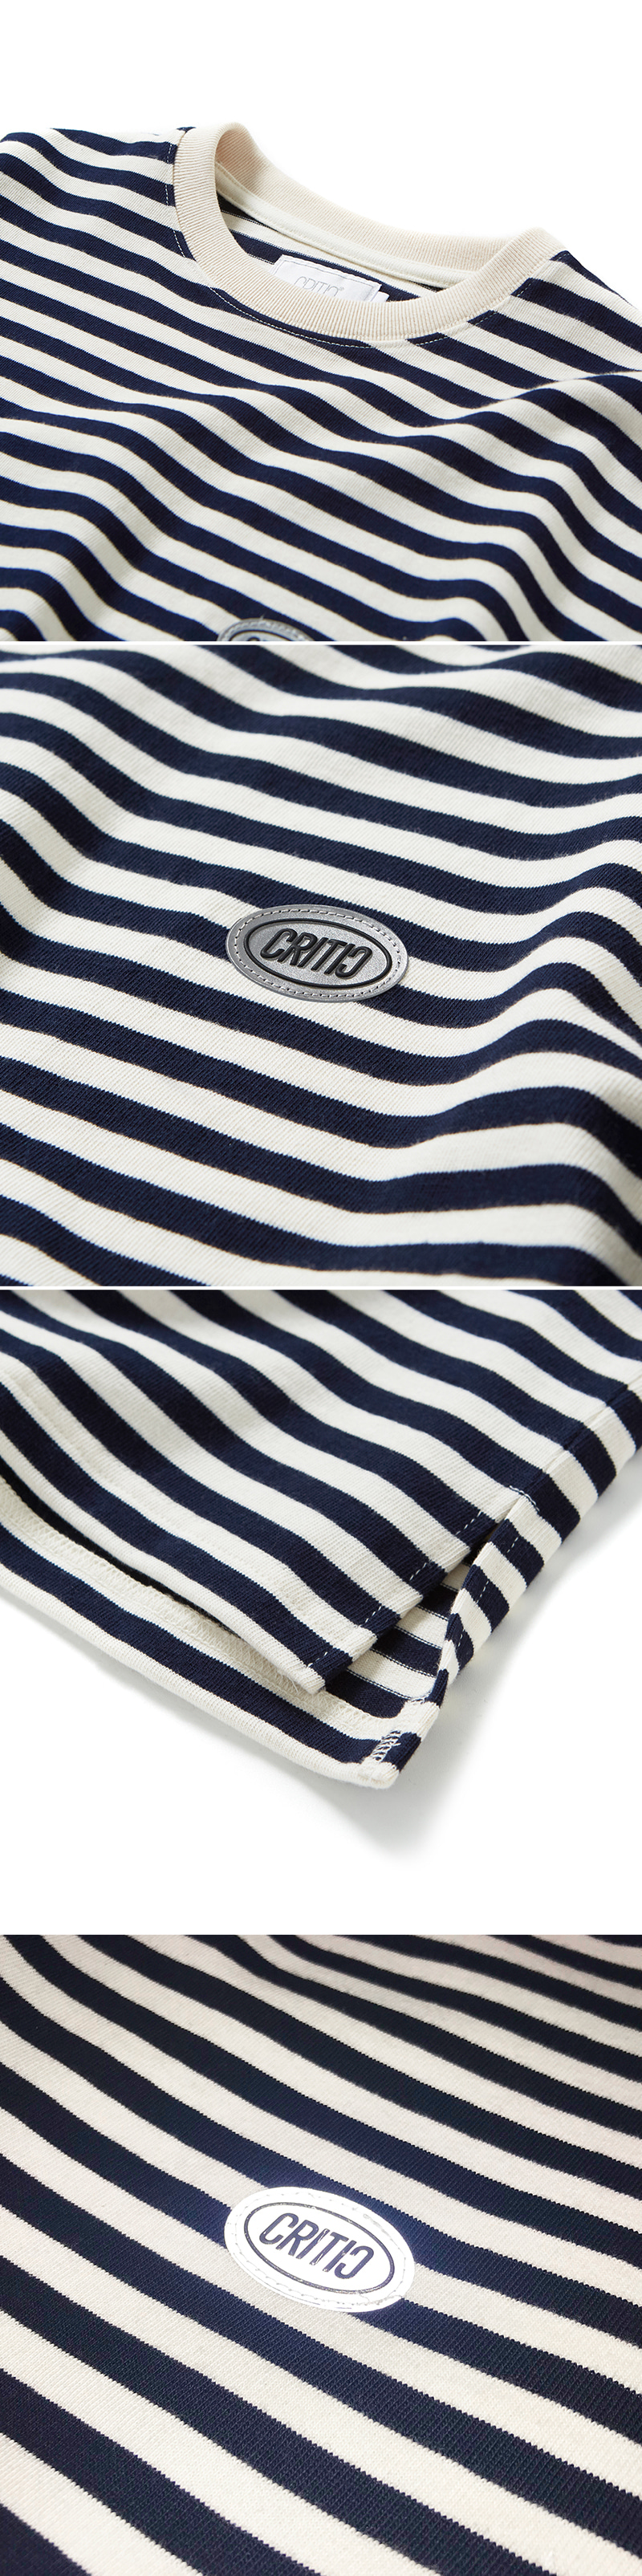 크리틱(CRITIC) STRIPE LONG SLEEVE T-SHIRT(NAVY)_CTOGPRL09UN0